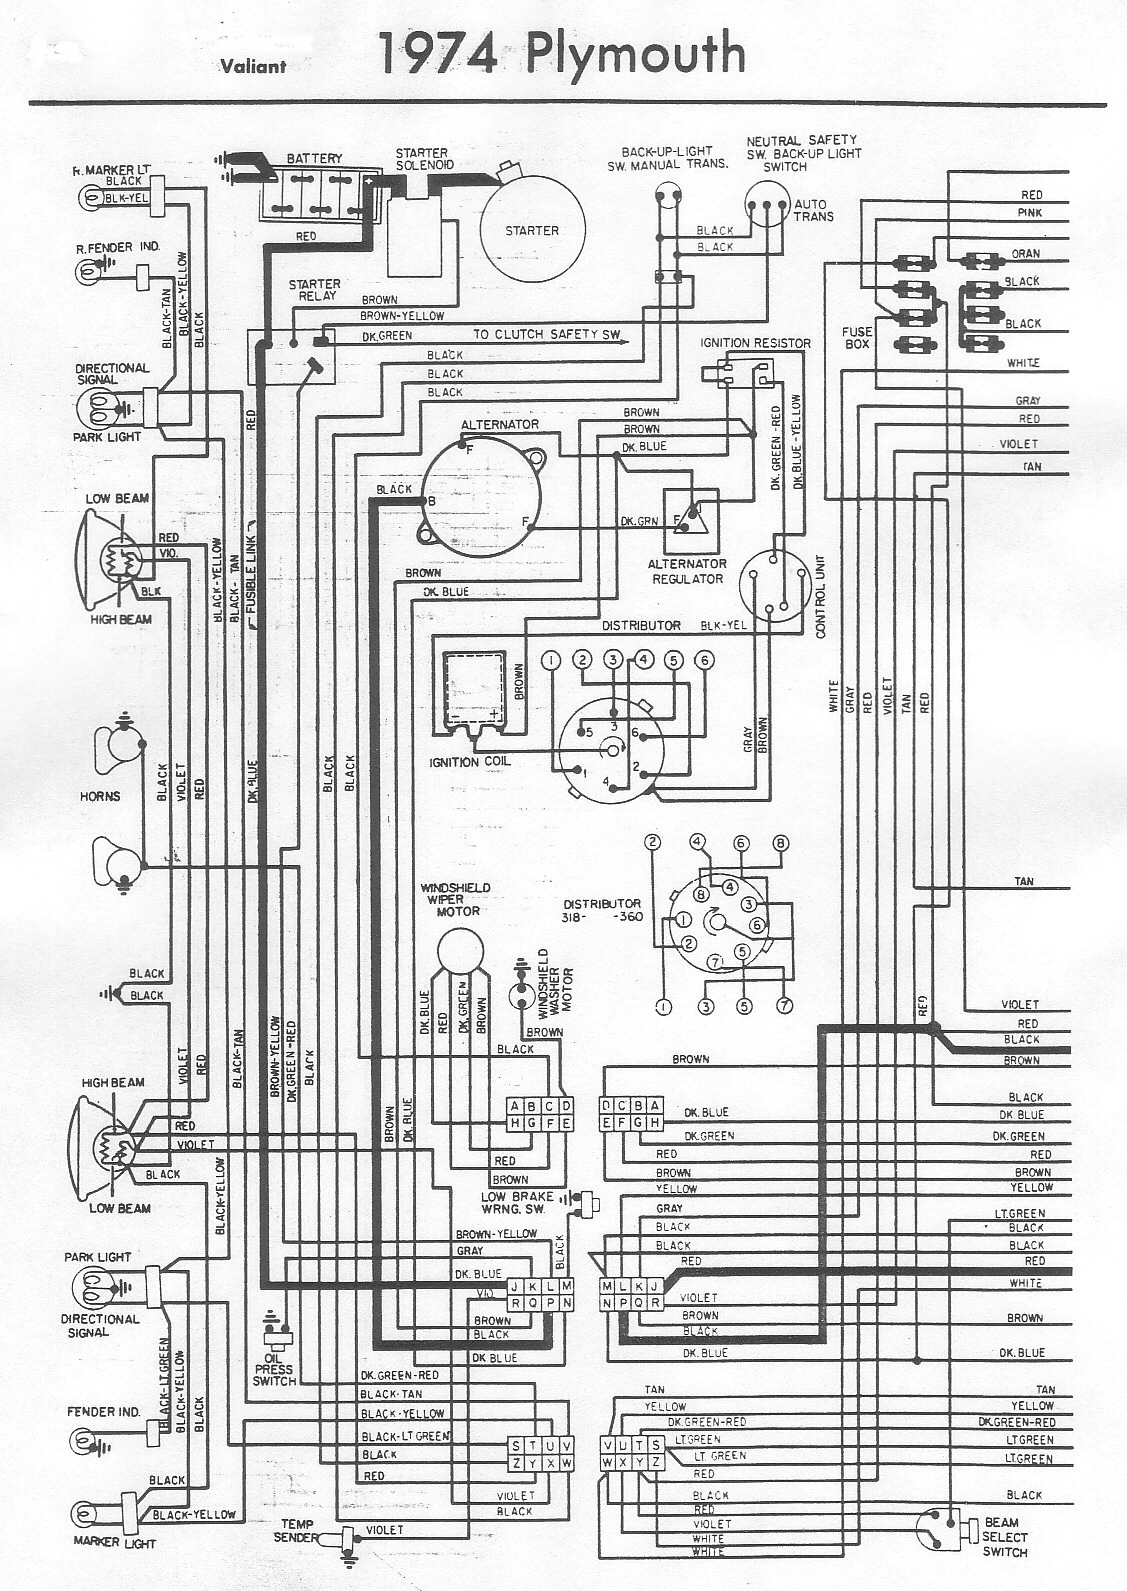 Fantastic 67 Charger 440 Wiring Diagram Basic Electronics Wiring Diagram Wiring 101 Photwellnesstrialsorg